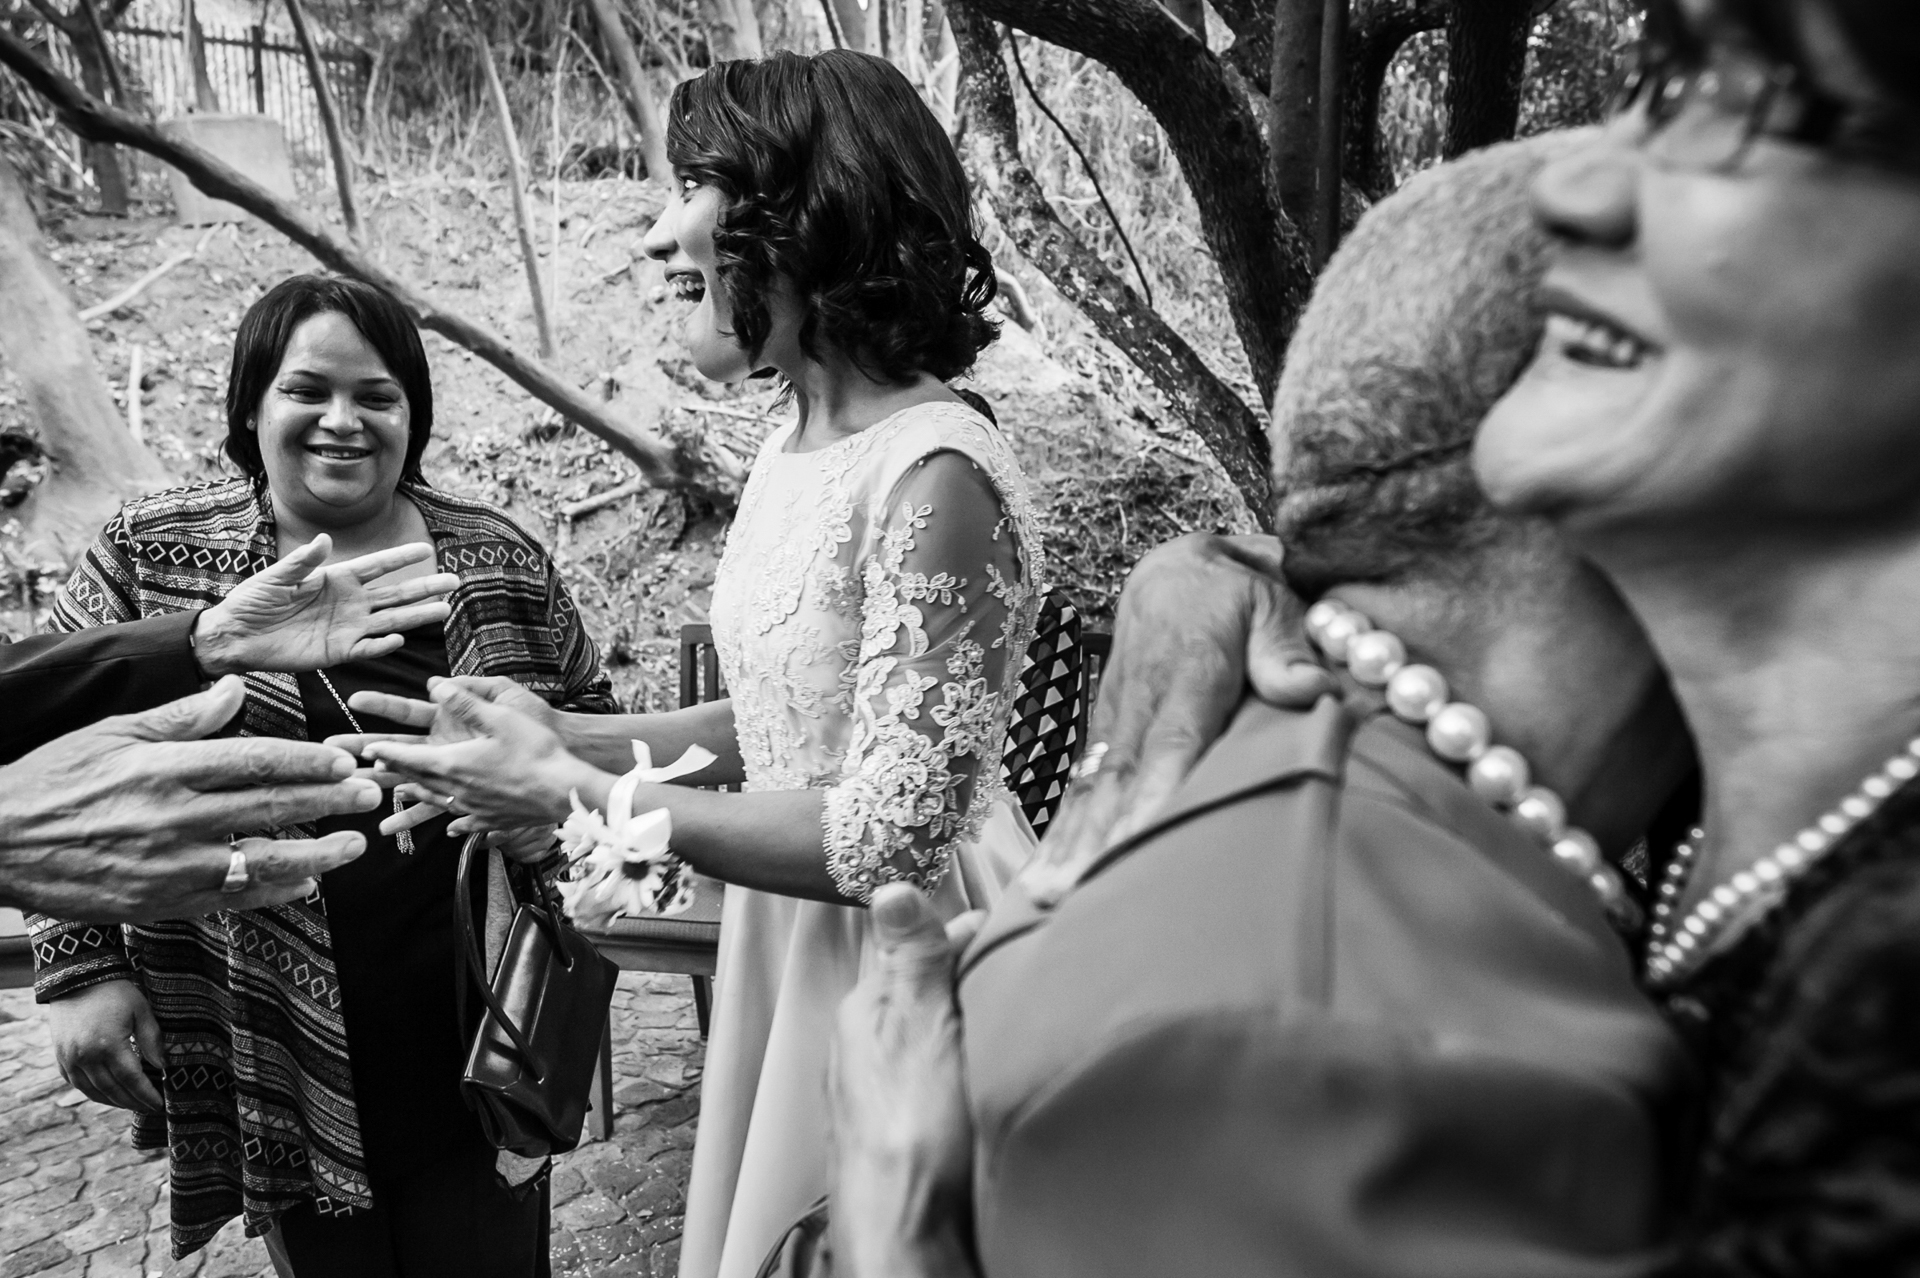 Cinnamon Boutique Hotel, Wilderness, Garden Route, South Africa photographer: Layers of happiness and pure joy. There may not have been a lot of guests at this wedding, but there were a lot of laughter and joy.